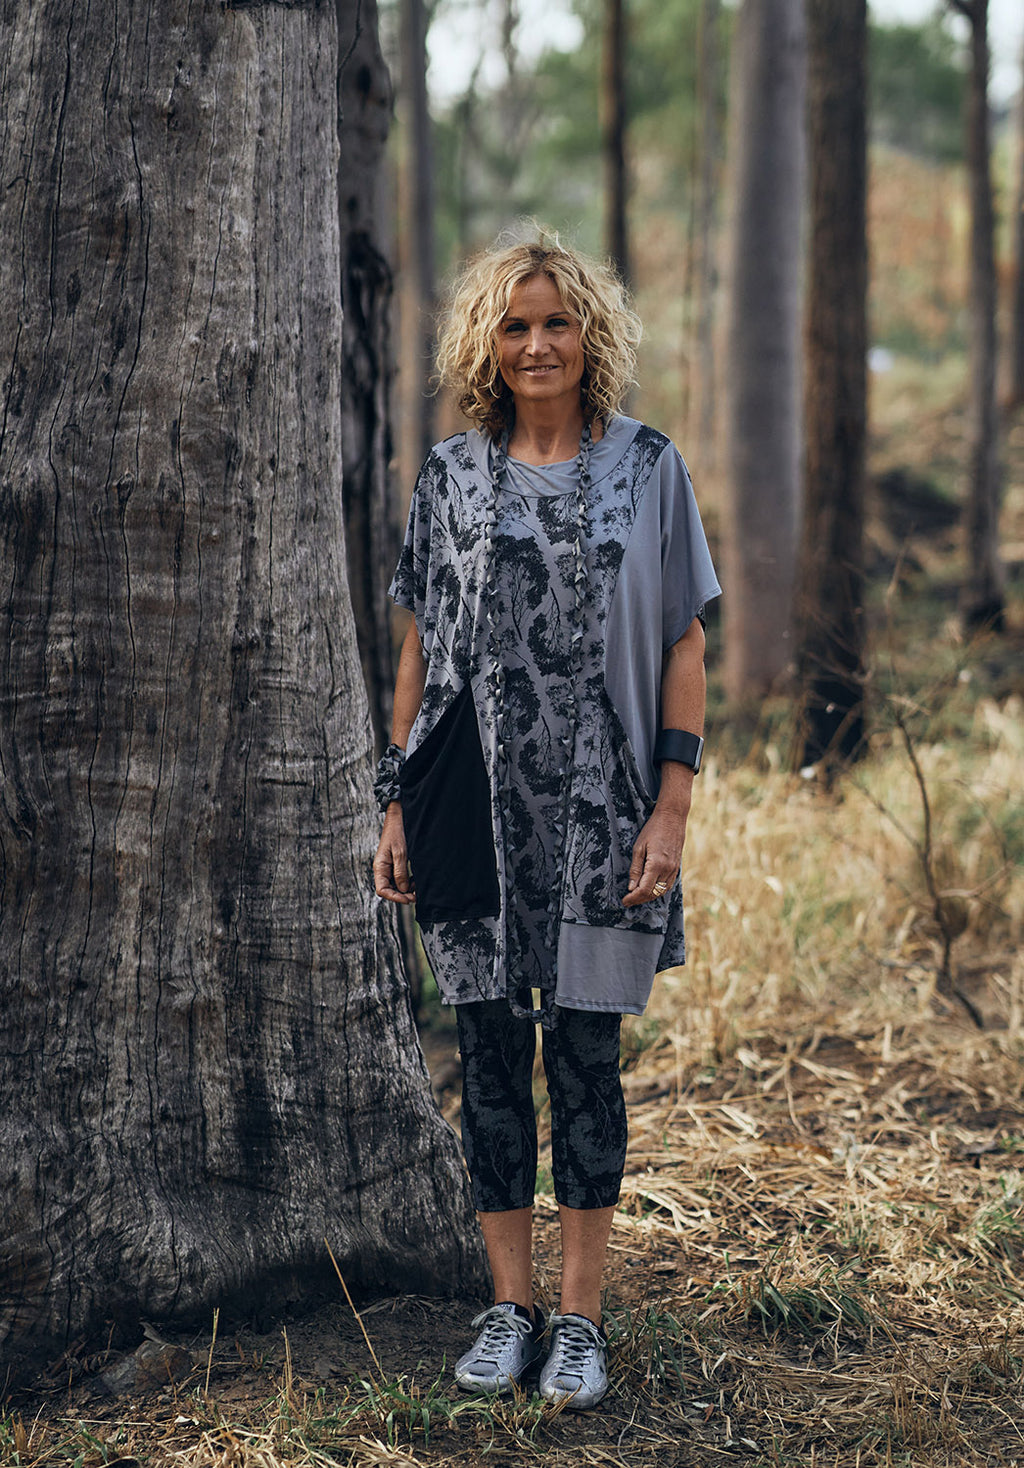 sustainable fashion online, ethical fashion online, printed leggings australia, shop printed leggings online, shop printed leggings australia, sustainable clothing, boutique fashion australia